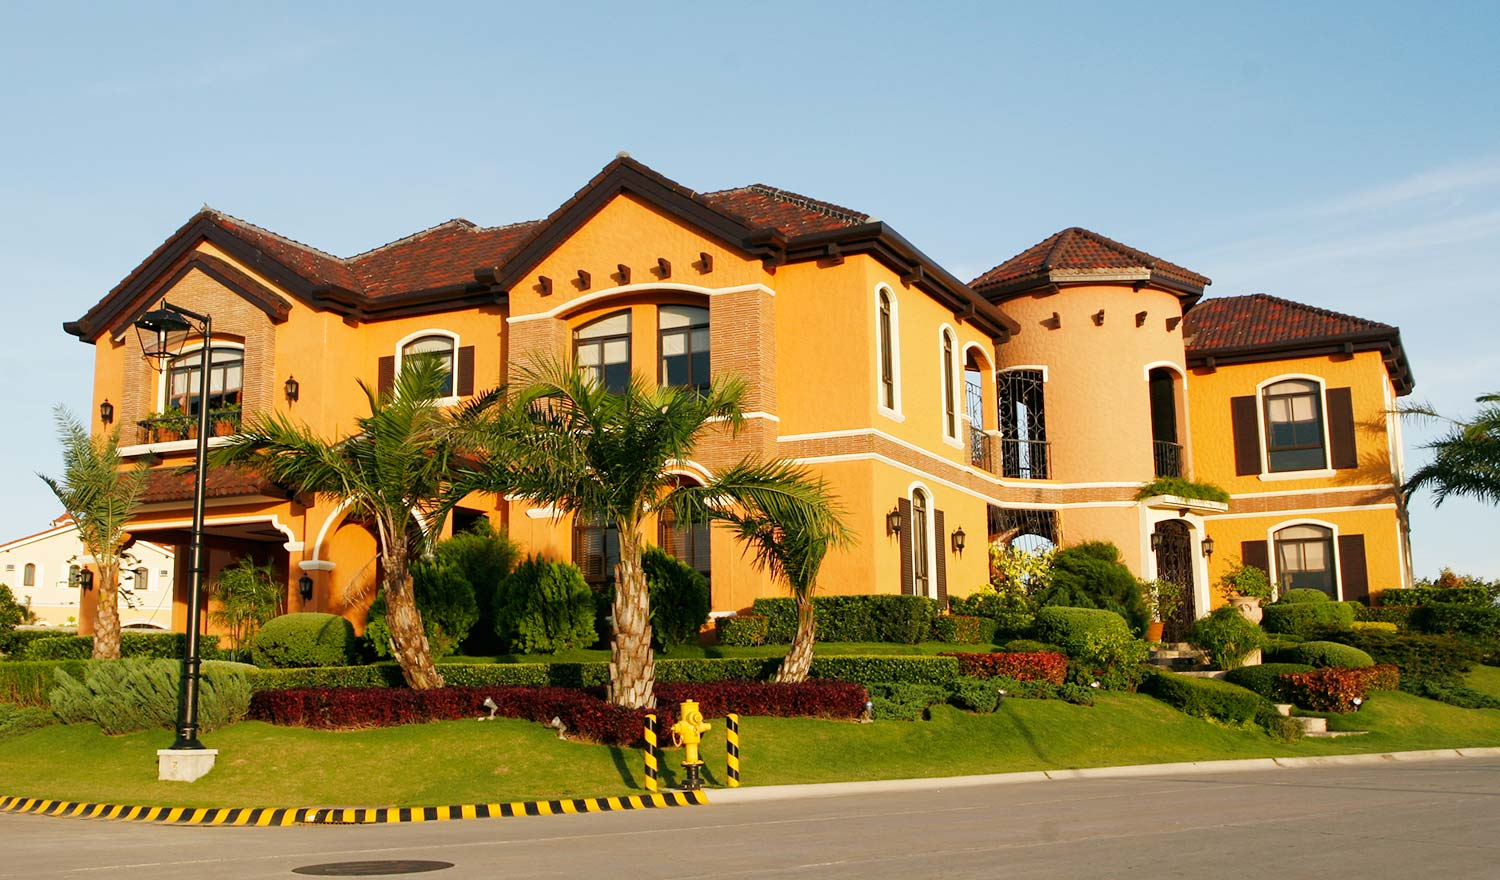 Sala Set For Sale In Las Pinas Portofino Alabang Da Vinci Model Primusland Realty